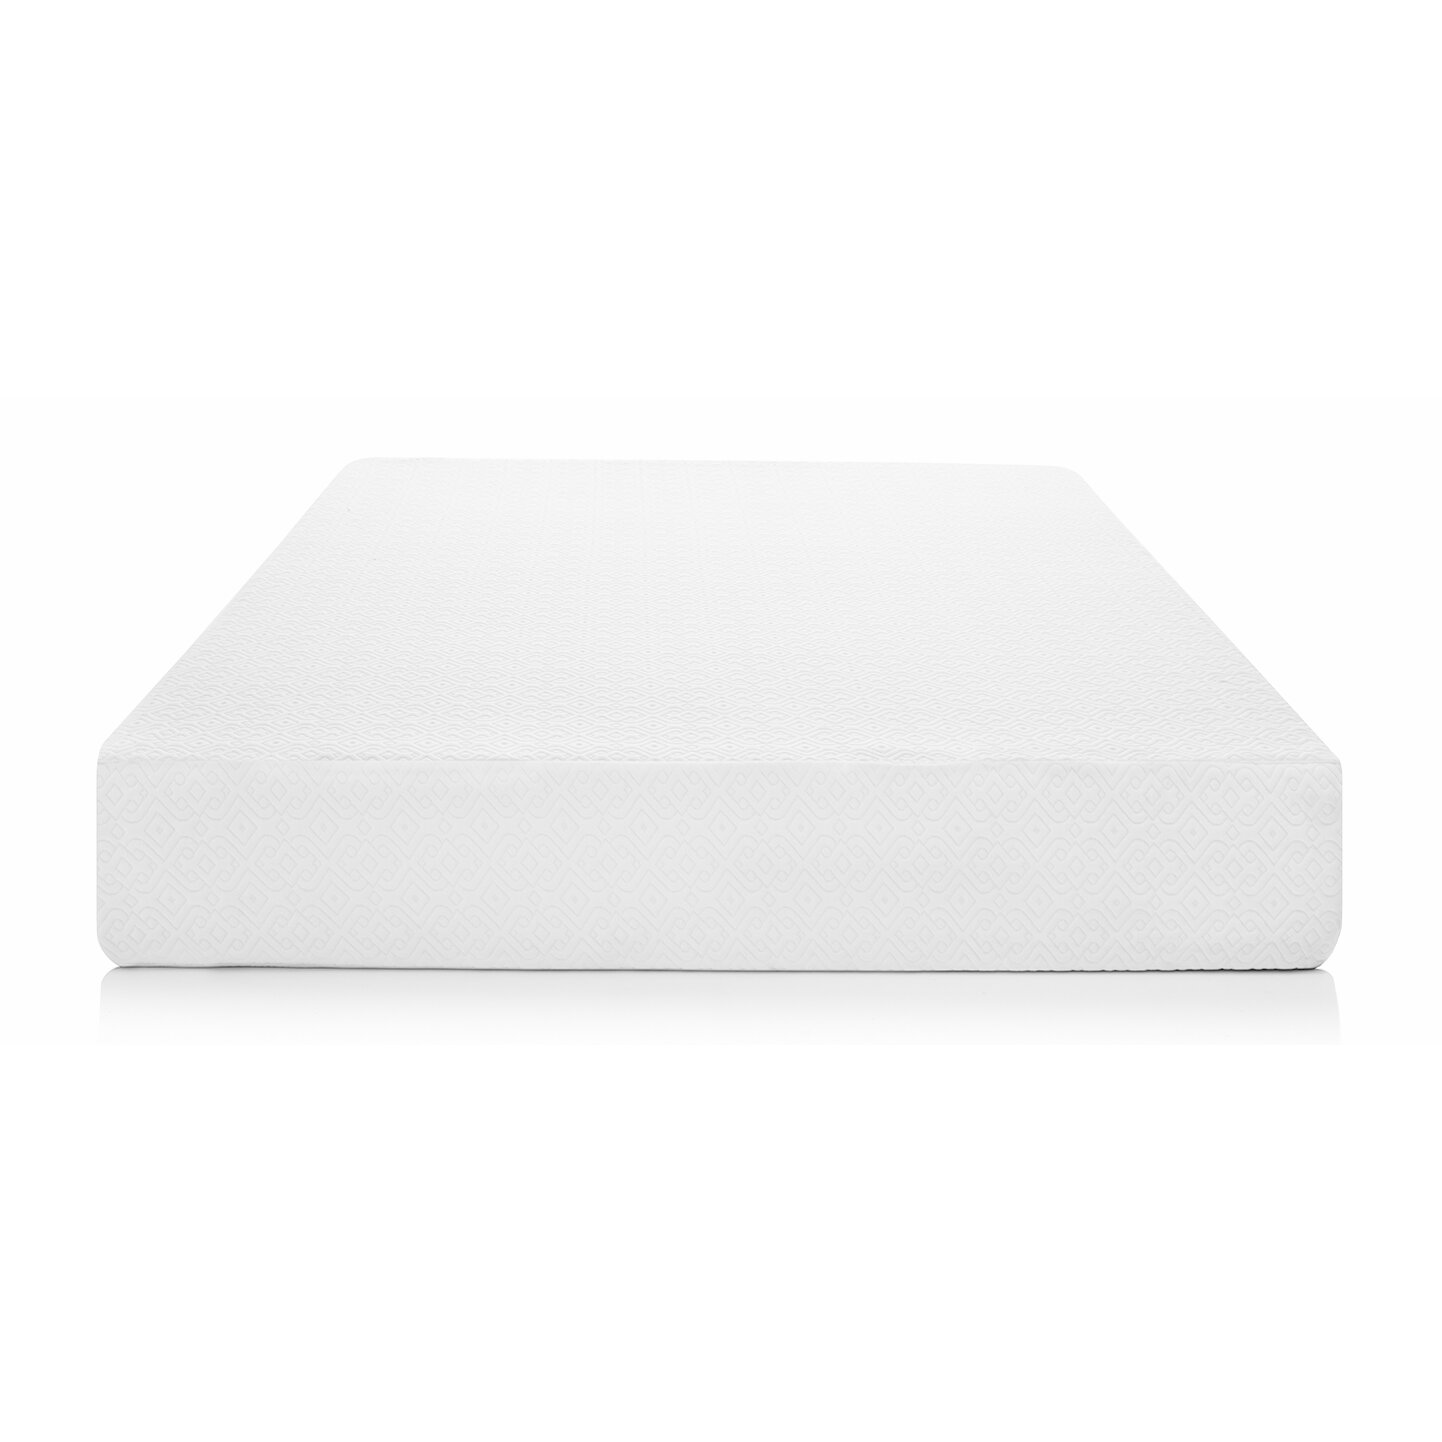 "Lucid 12"" Plush Viscoelastic Gel Memory Foam Mattress"